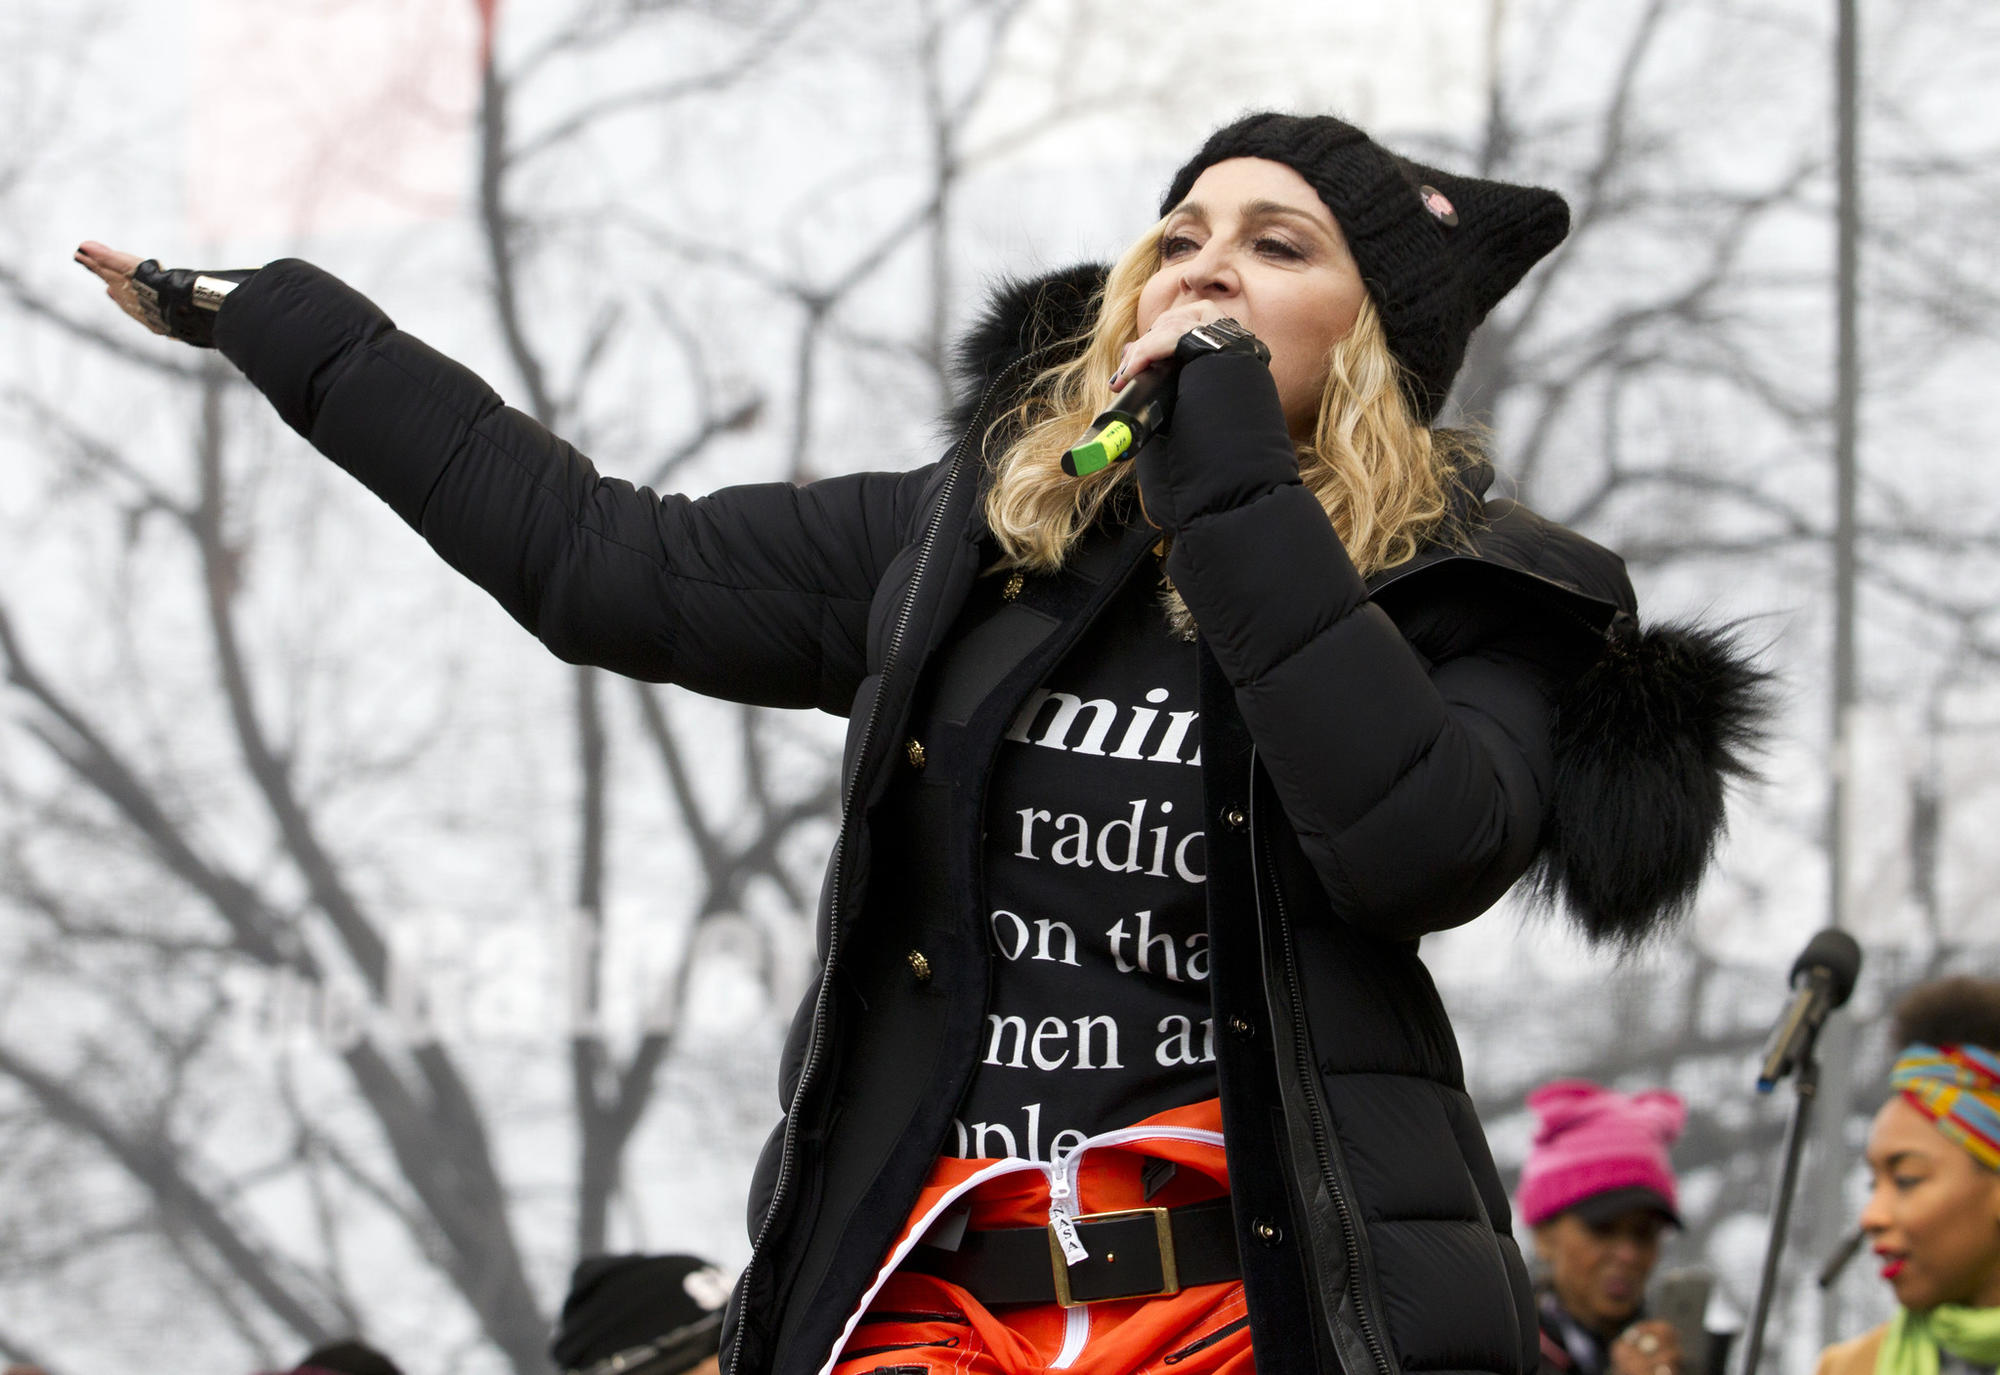 While Fox News on Saturday downplayed scenes of marches happening around the world, it did show Madonna's performance at the Women's March on Washington. (Jose Luis Magana / AP)